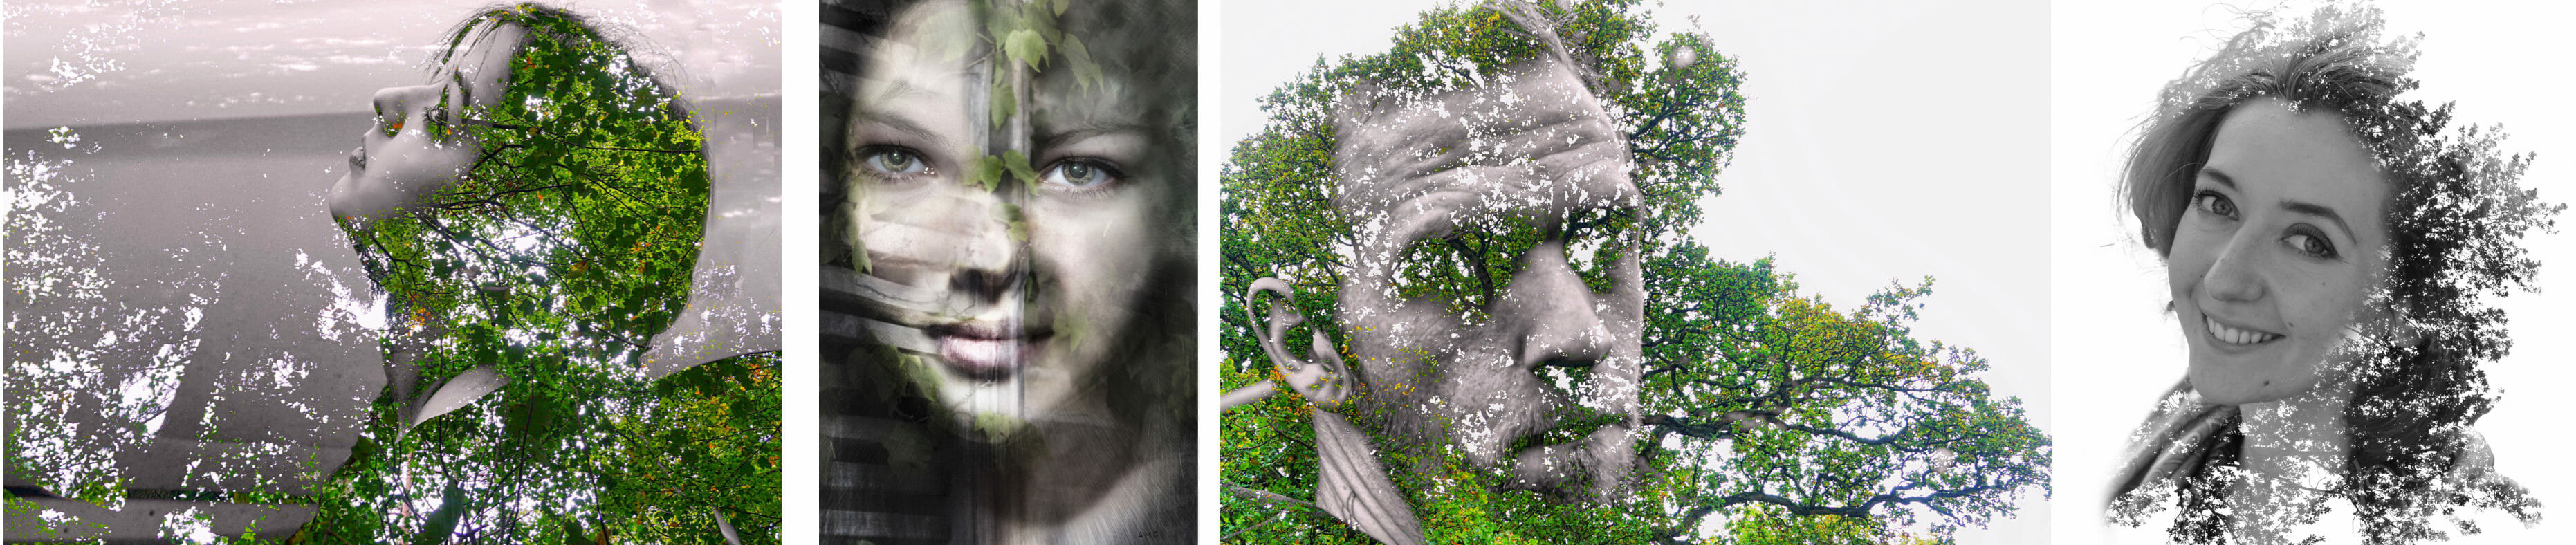 iphotography header title multiple exposure